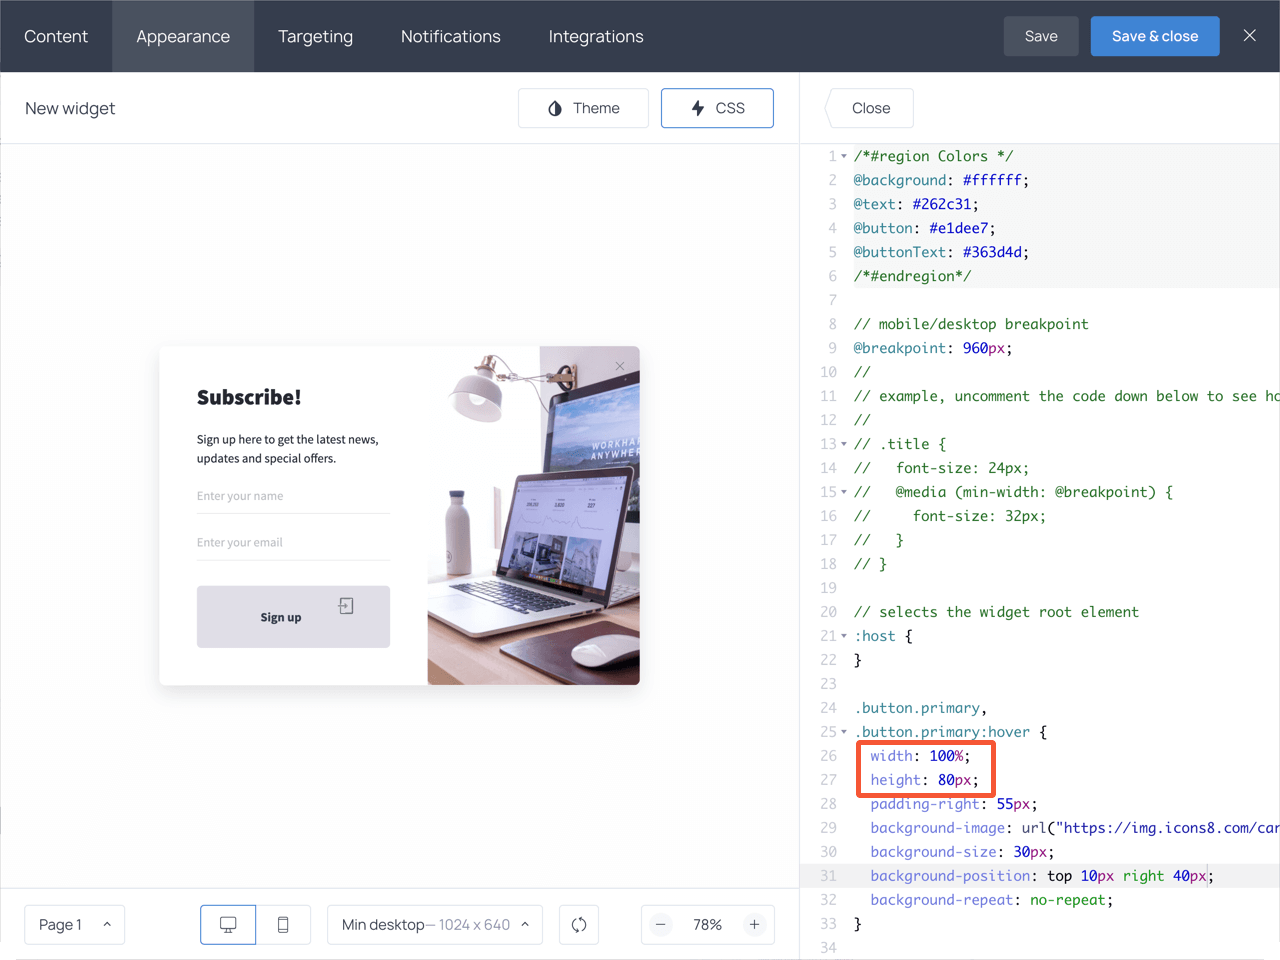 Changing the button width and height